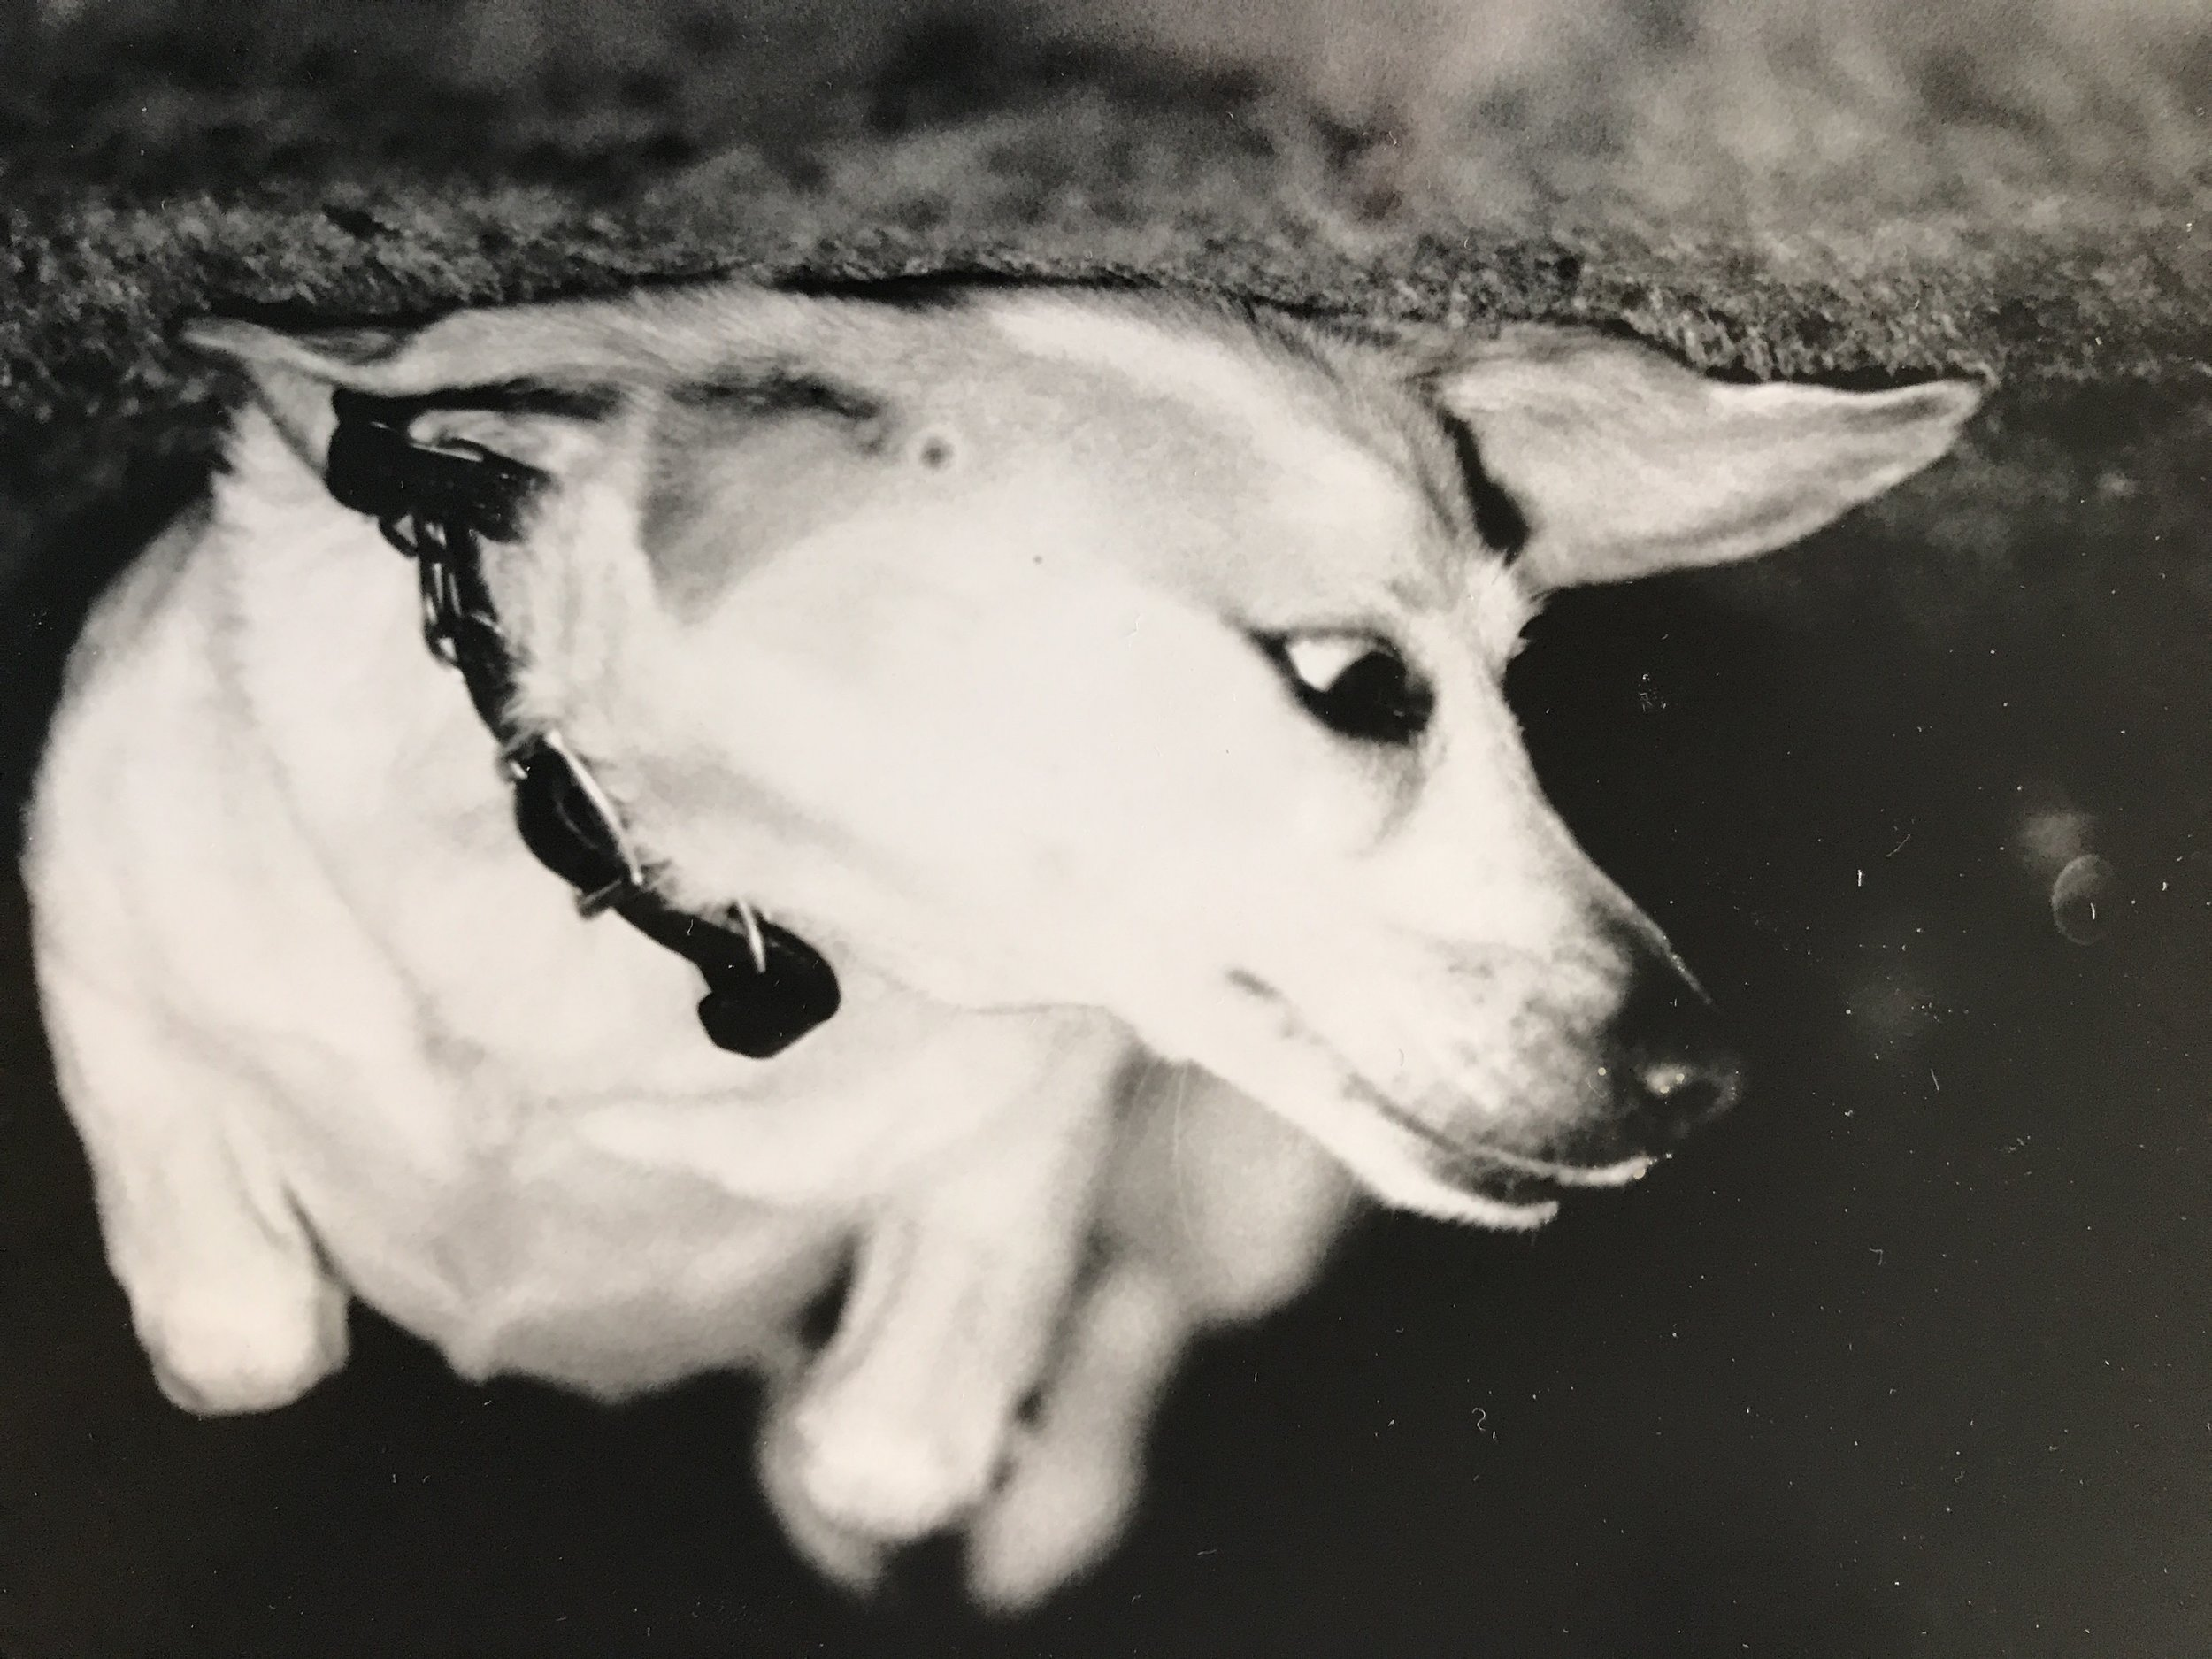 Ginger, my childhood dog and the subject of the poem, in a photo I took when I was a kid.